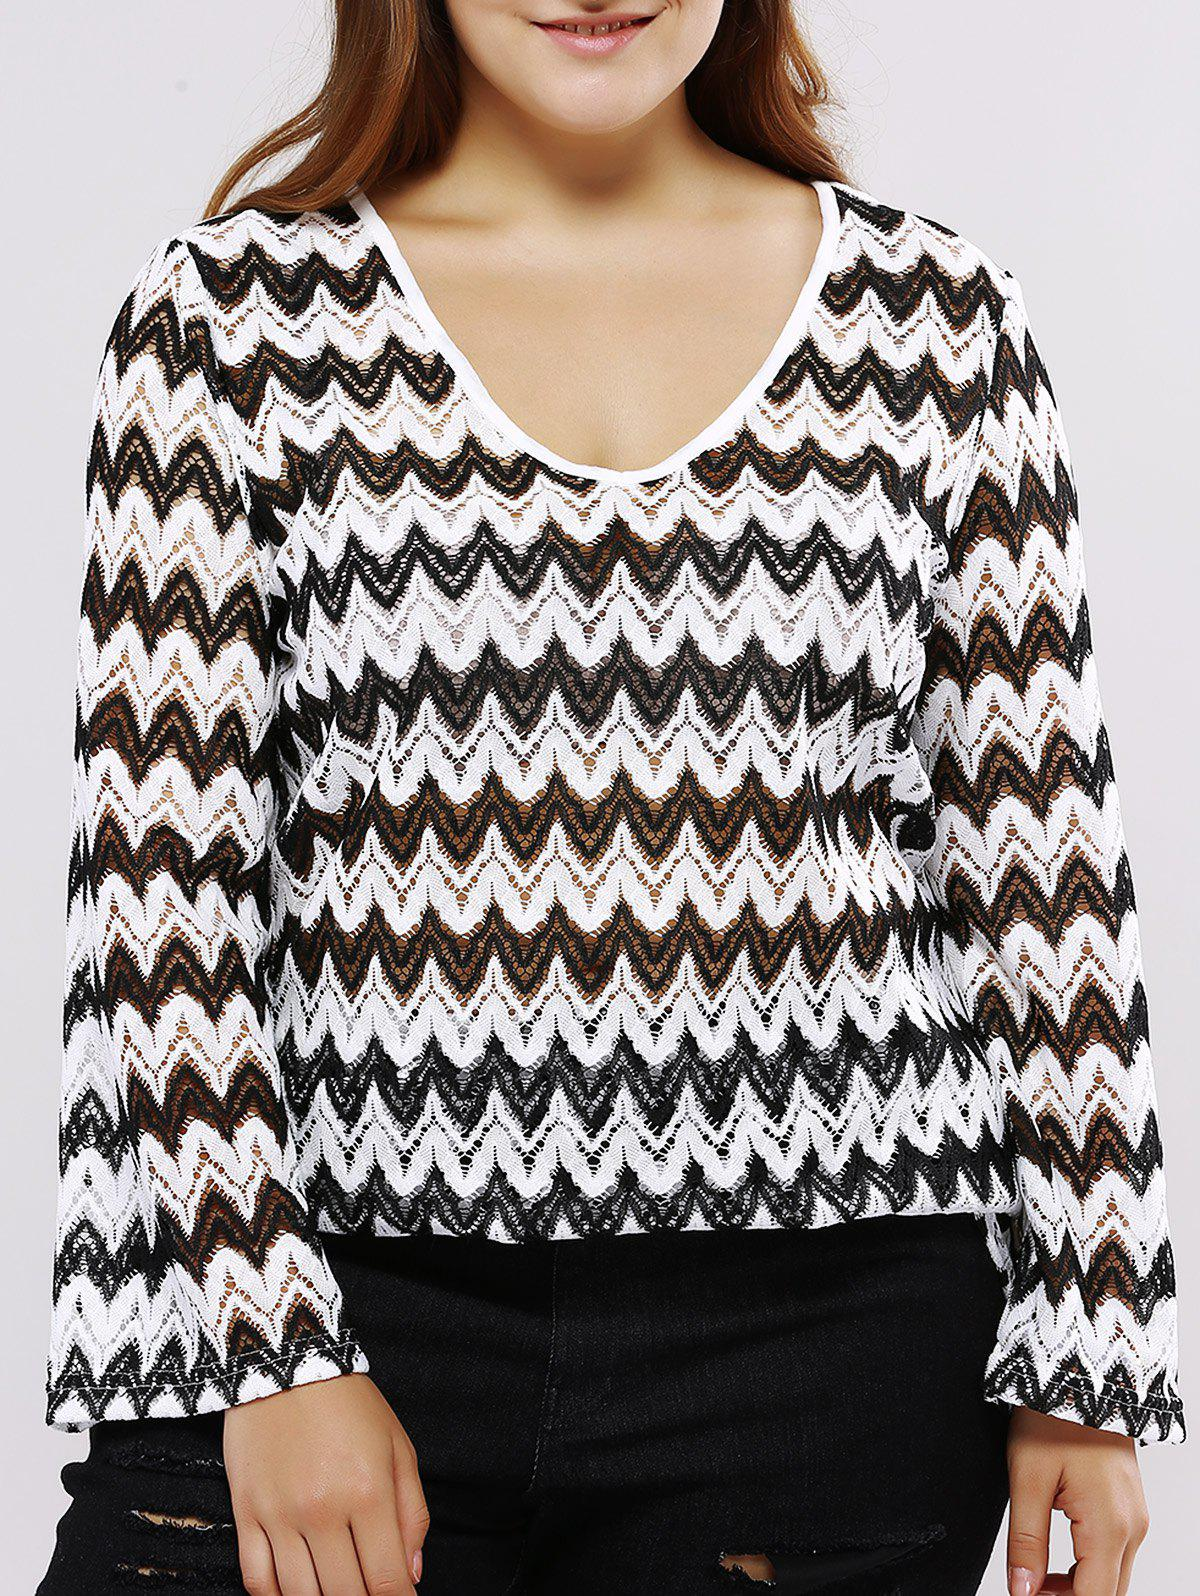 Oversized Casual Low Cut Chevron Pattern Blouse - WHITE/BLACK 5XL